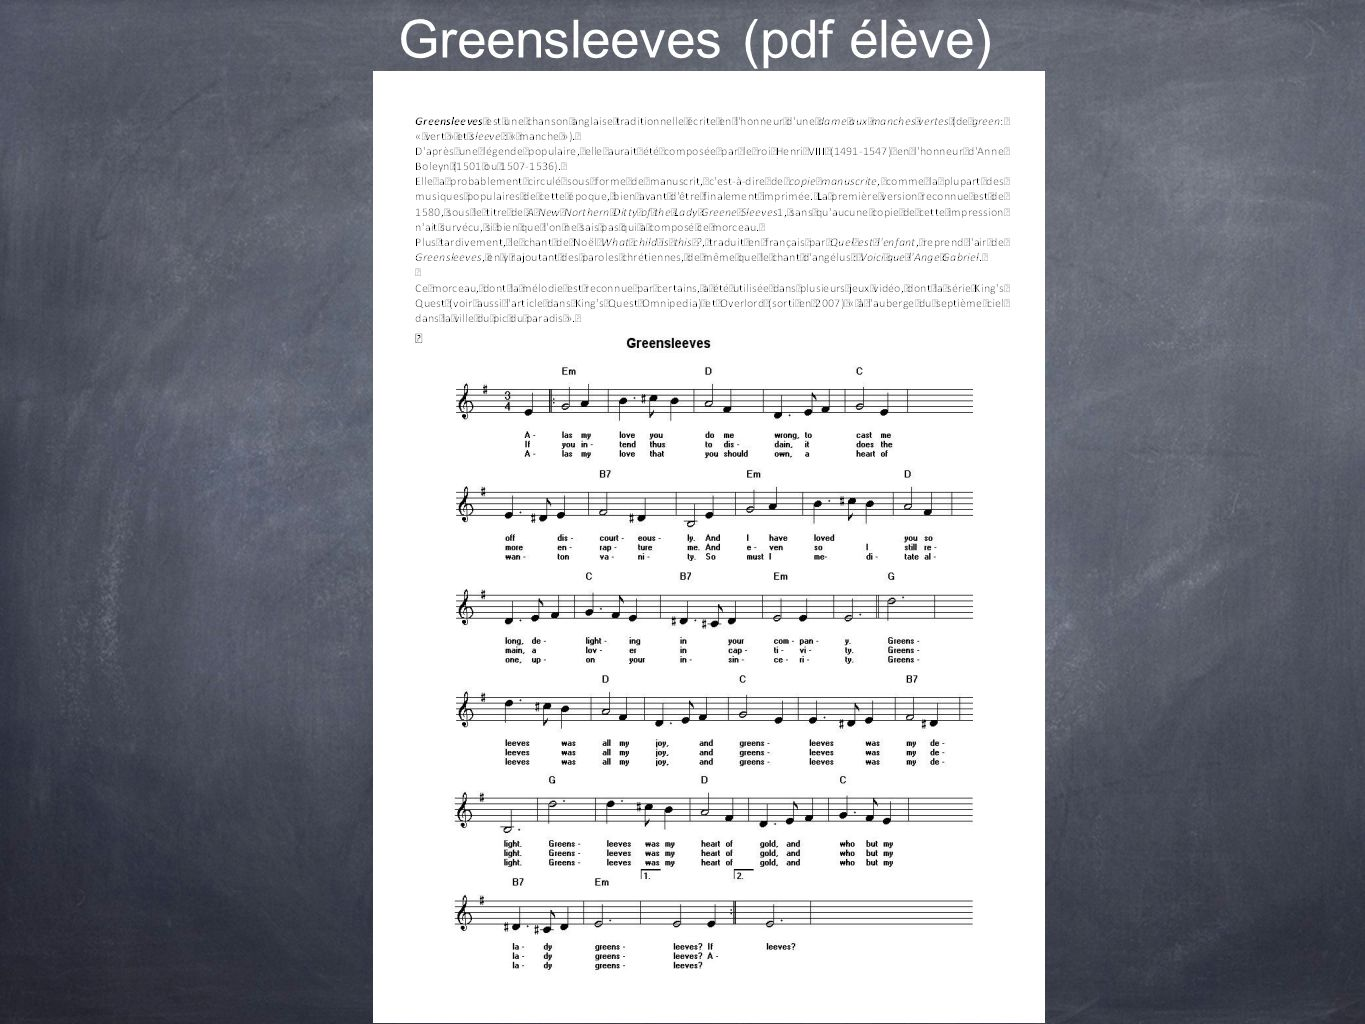 Greensleeves (pdf élève)